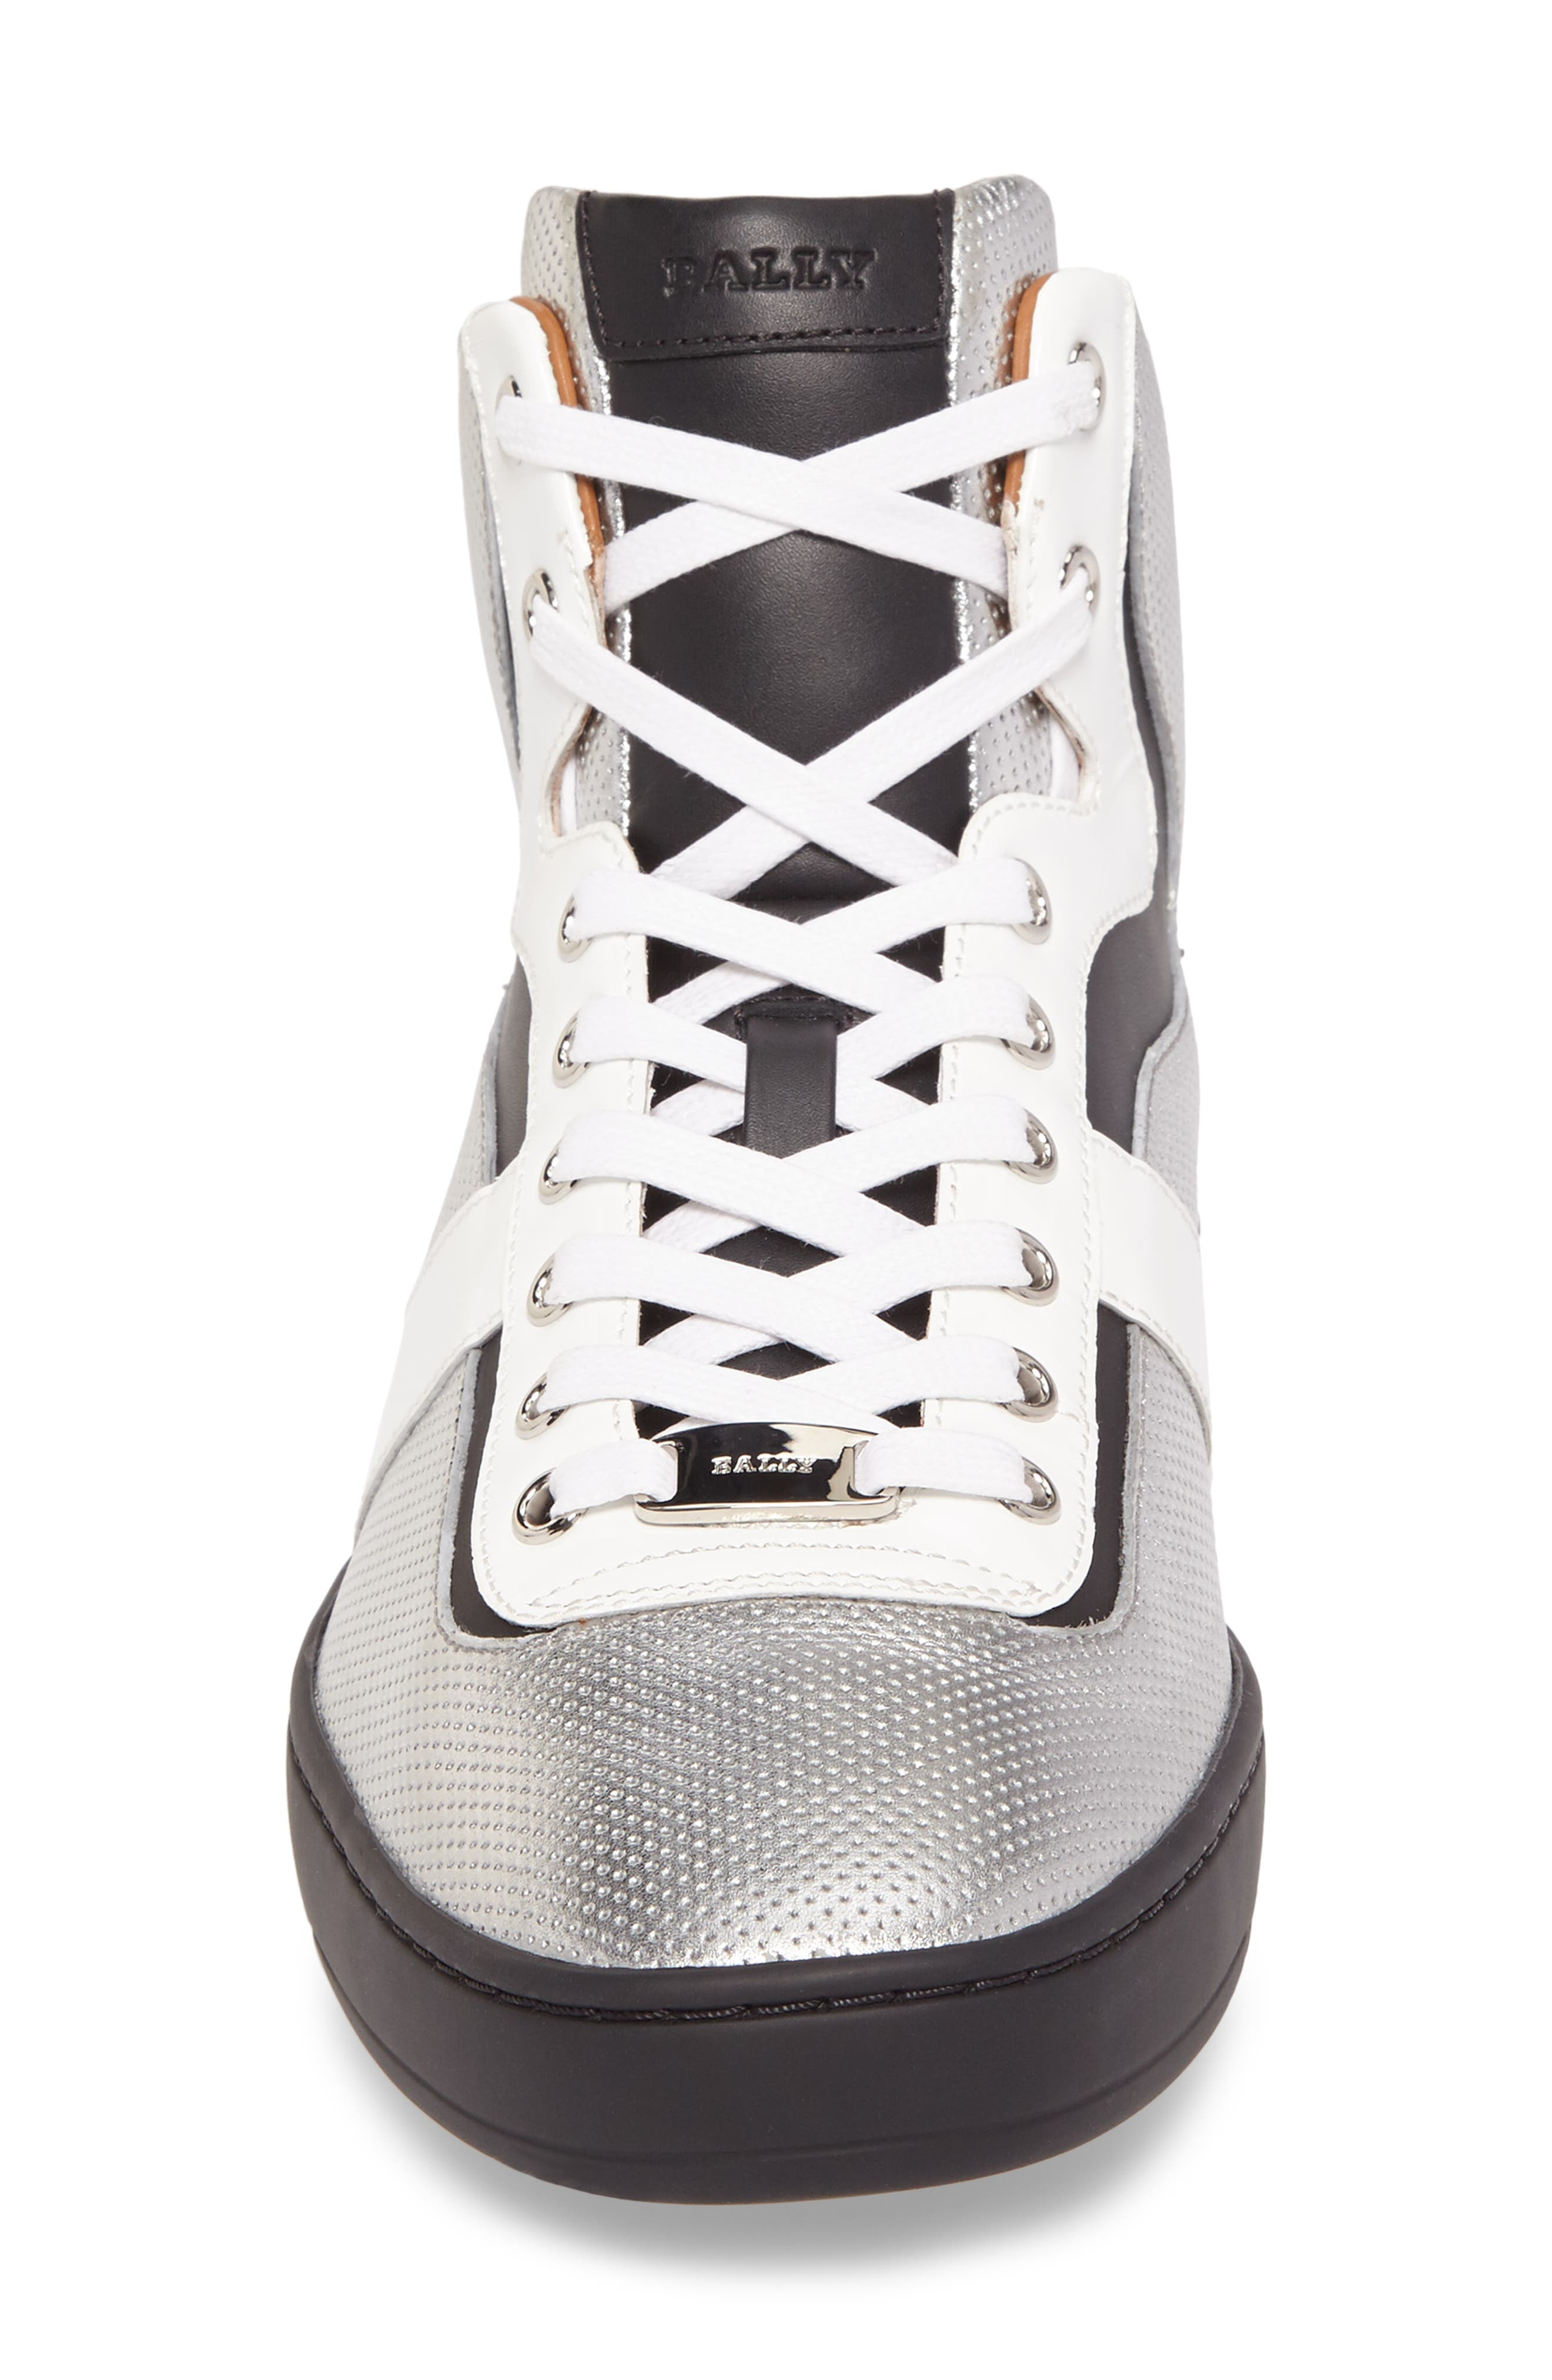 Eroy High Top Sneaker,                             Alternate thumbnail 4, color,                             049